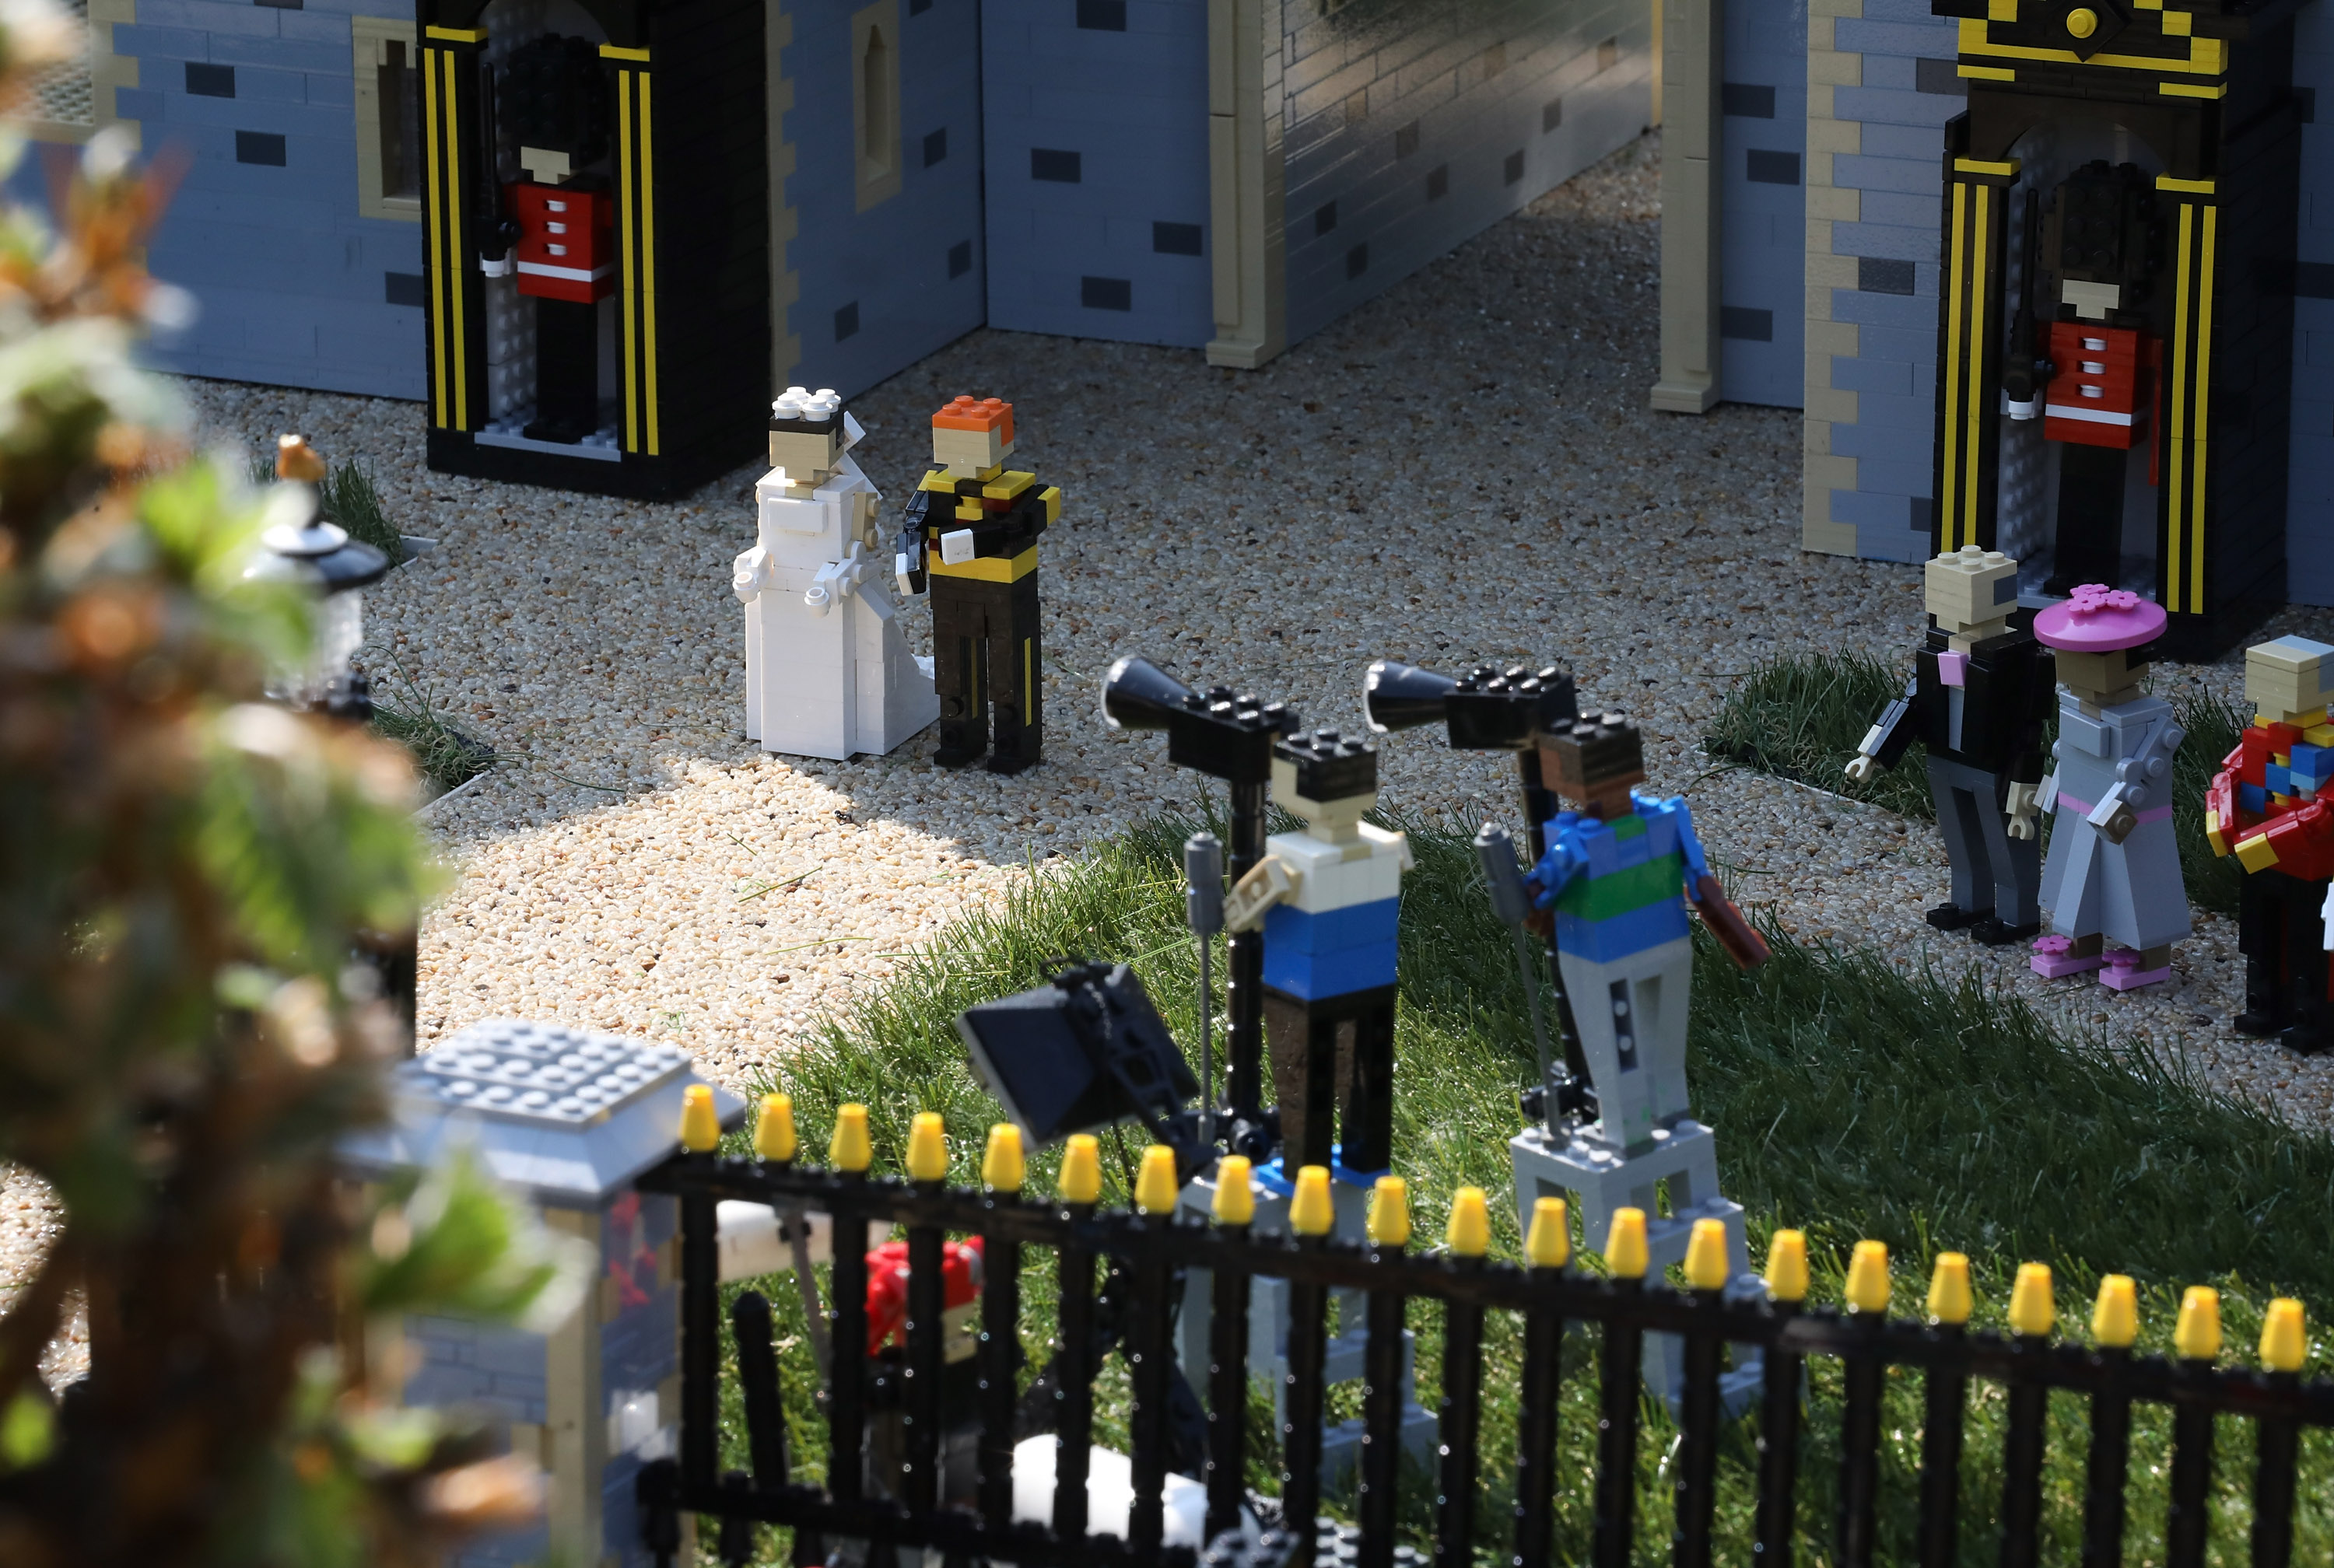 WINDSOR, ENGLAND - MAY 08: Detail of a press photographers in a brand new model of Windor Castle goes on permananent display to celebate the wedding of HRH Prince Harry and Meghan Markle at LEGOLAND Windsor on May 8, 2018 in Windsor, England. Joining Prince Harry and Meghan Markle are members of the Royal Family and expected guests including The Spice Girls and Elton John. (Photo by Tim P. Whitby/Tim P. Whitby/Getty Images)